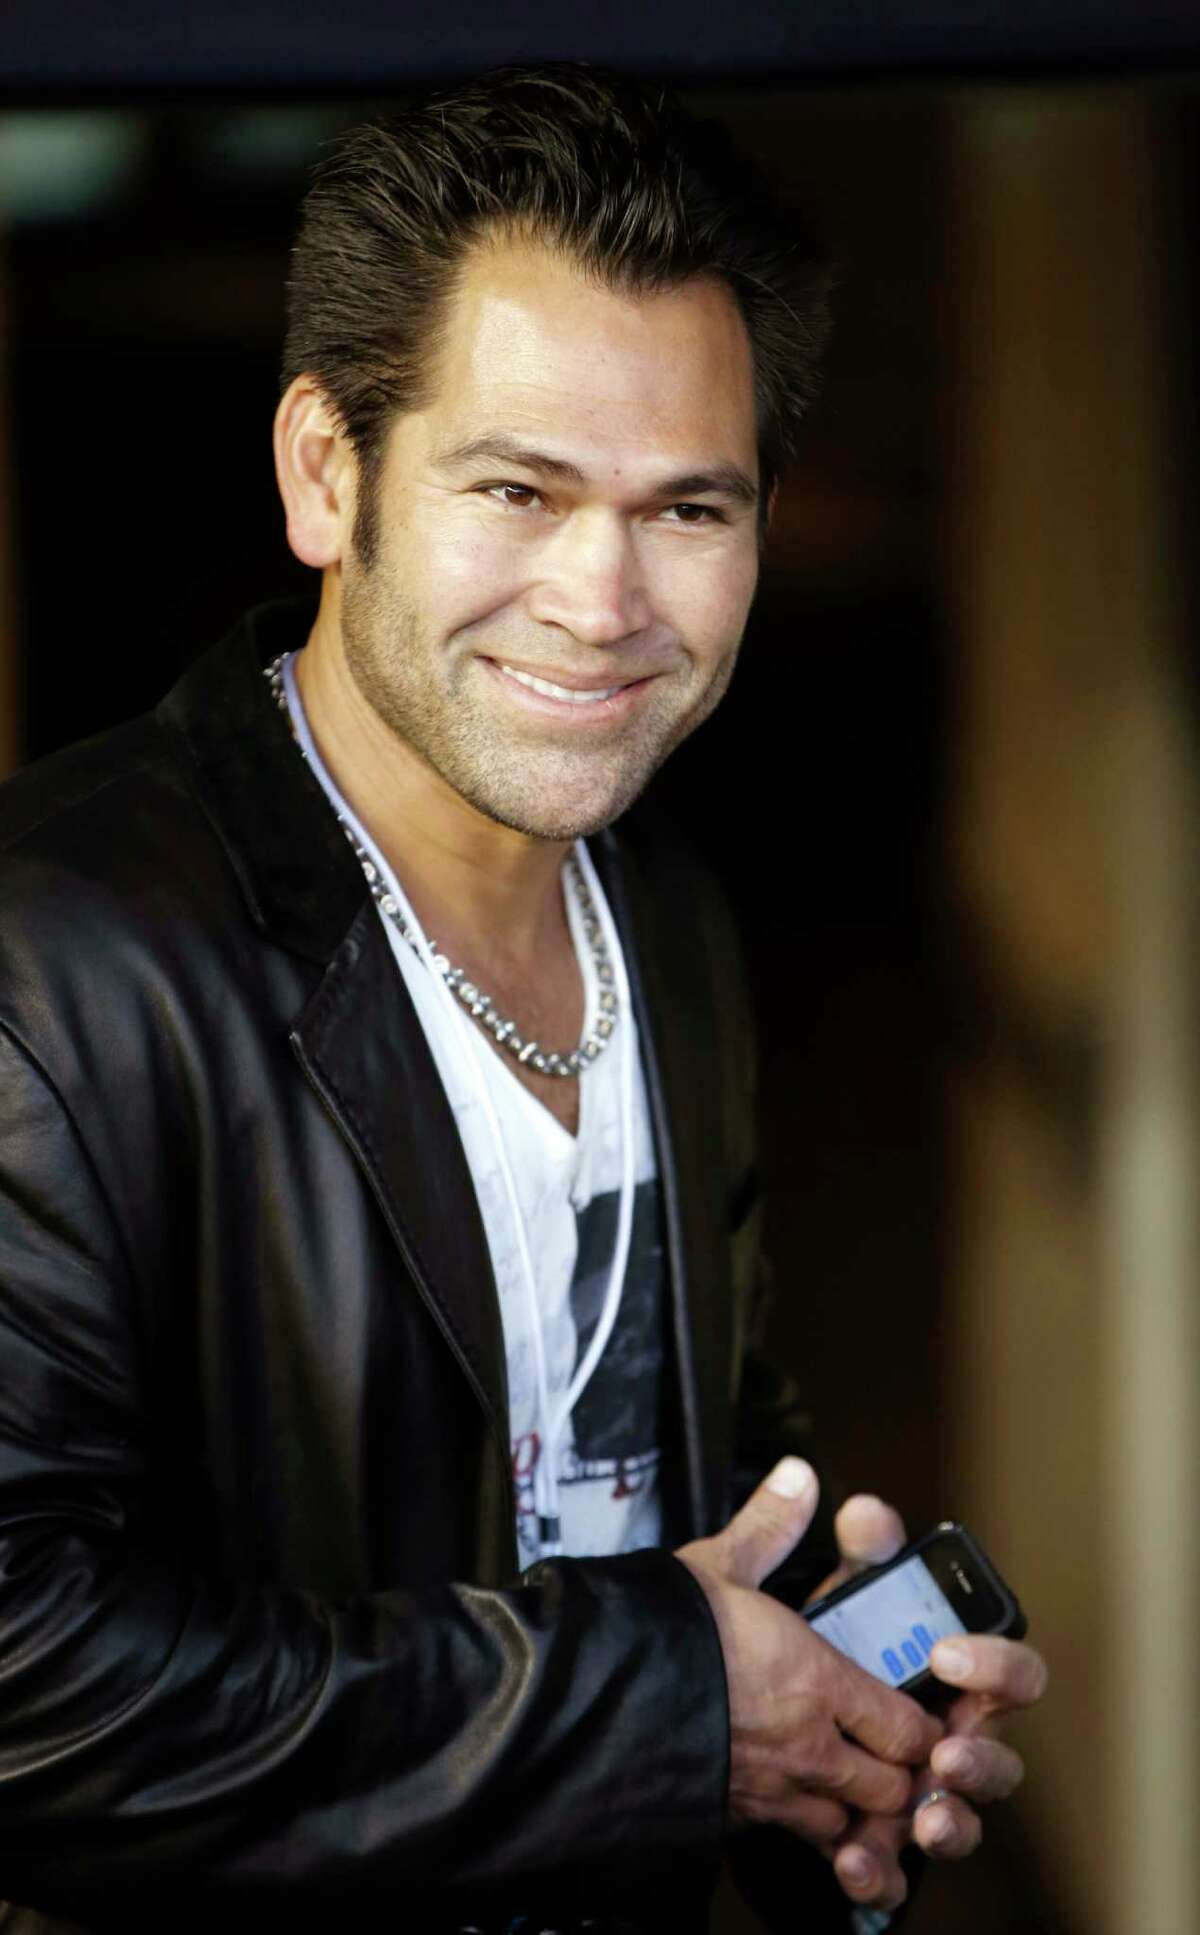 Former Boston Red Sox and New York Yankees player Johnny Damon.